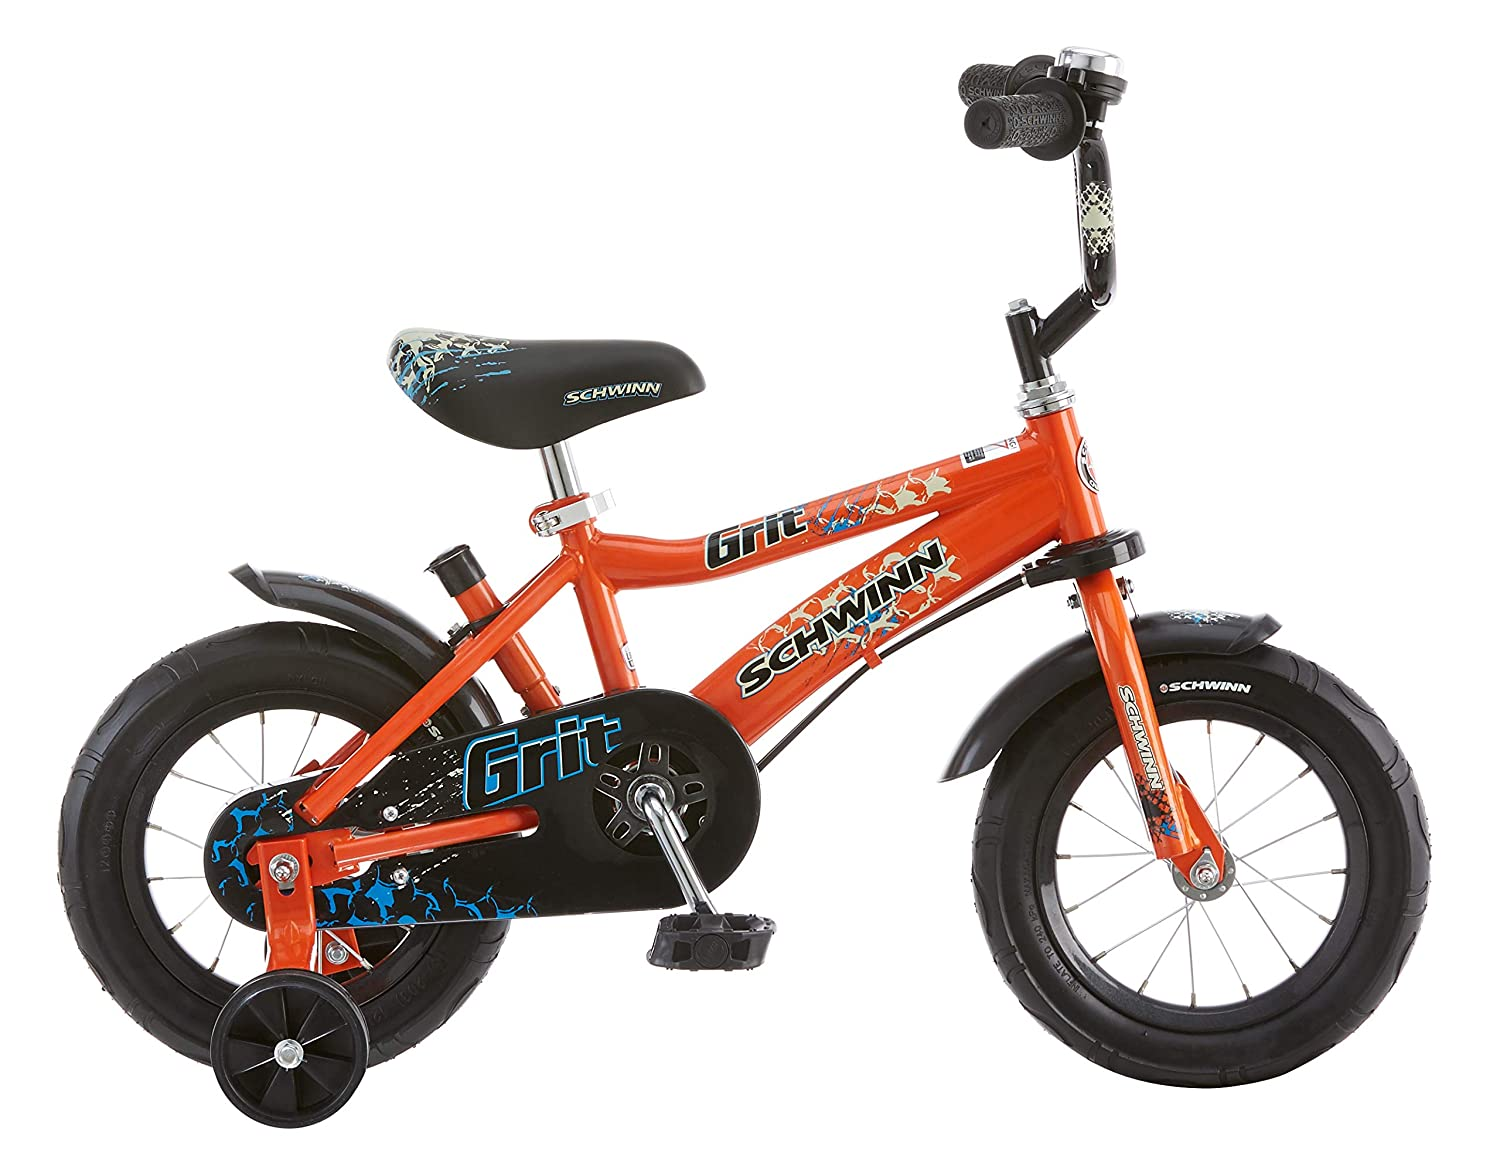 cda1eb09cc1 Amazon.com : Schwinn Grit Steerable Kids Bike, Featuring Push Handle for  Easy Steering, Training Wheels, Enclosed Chainguard, Quick-Adjust Seat, and  12-Inch ...